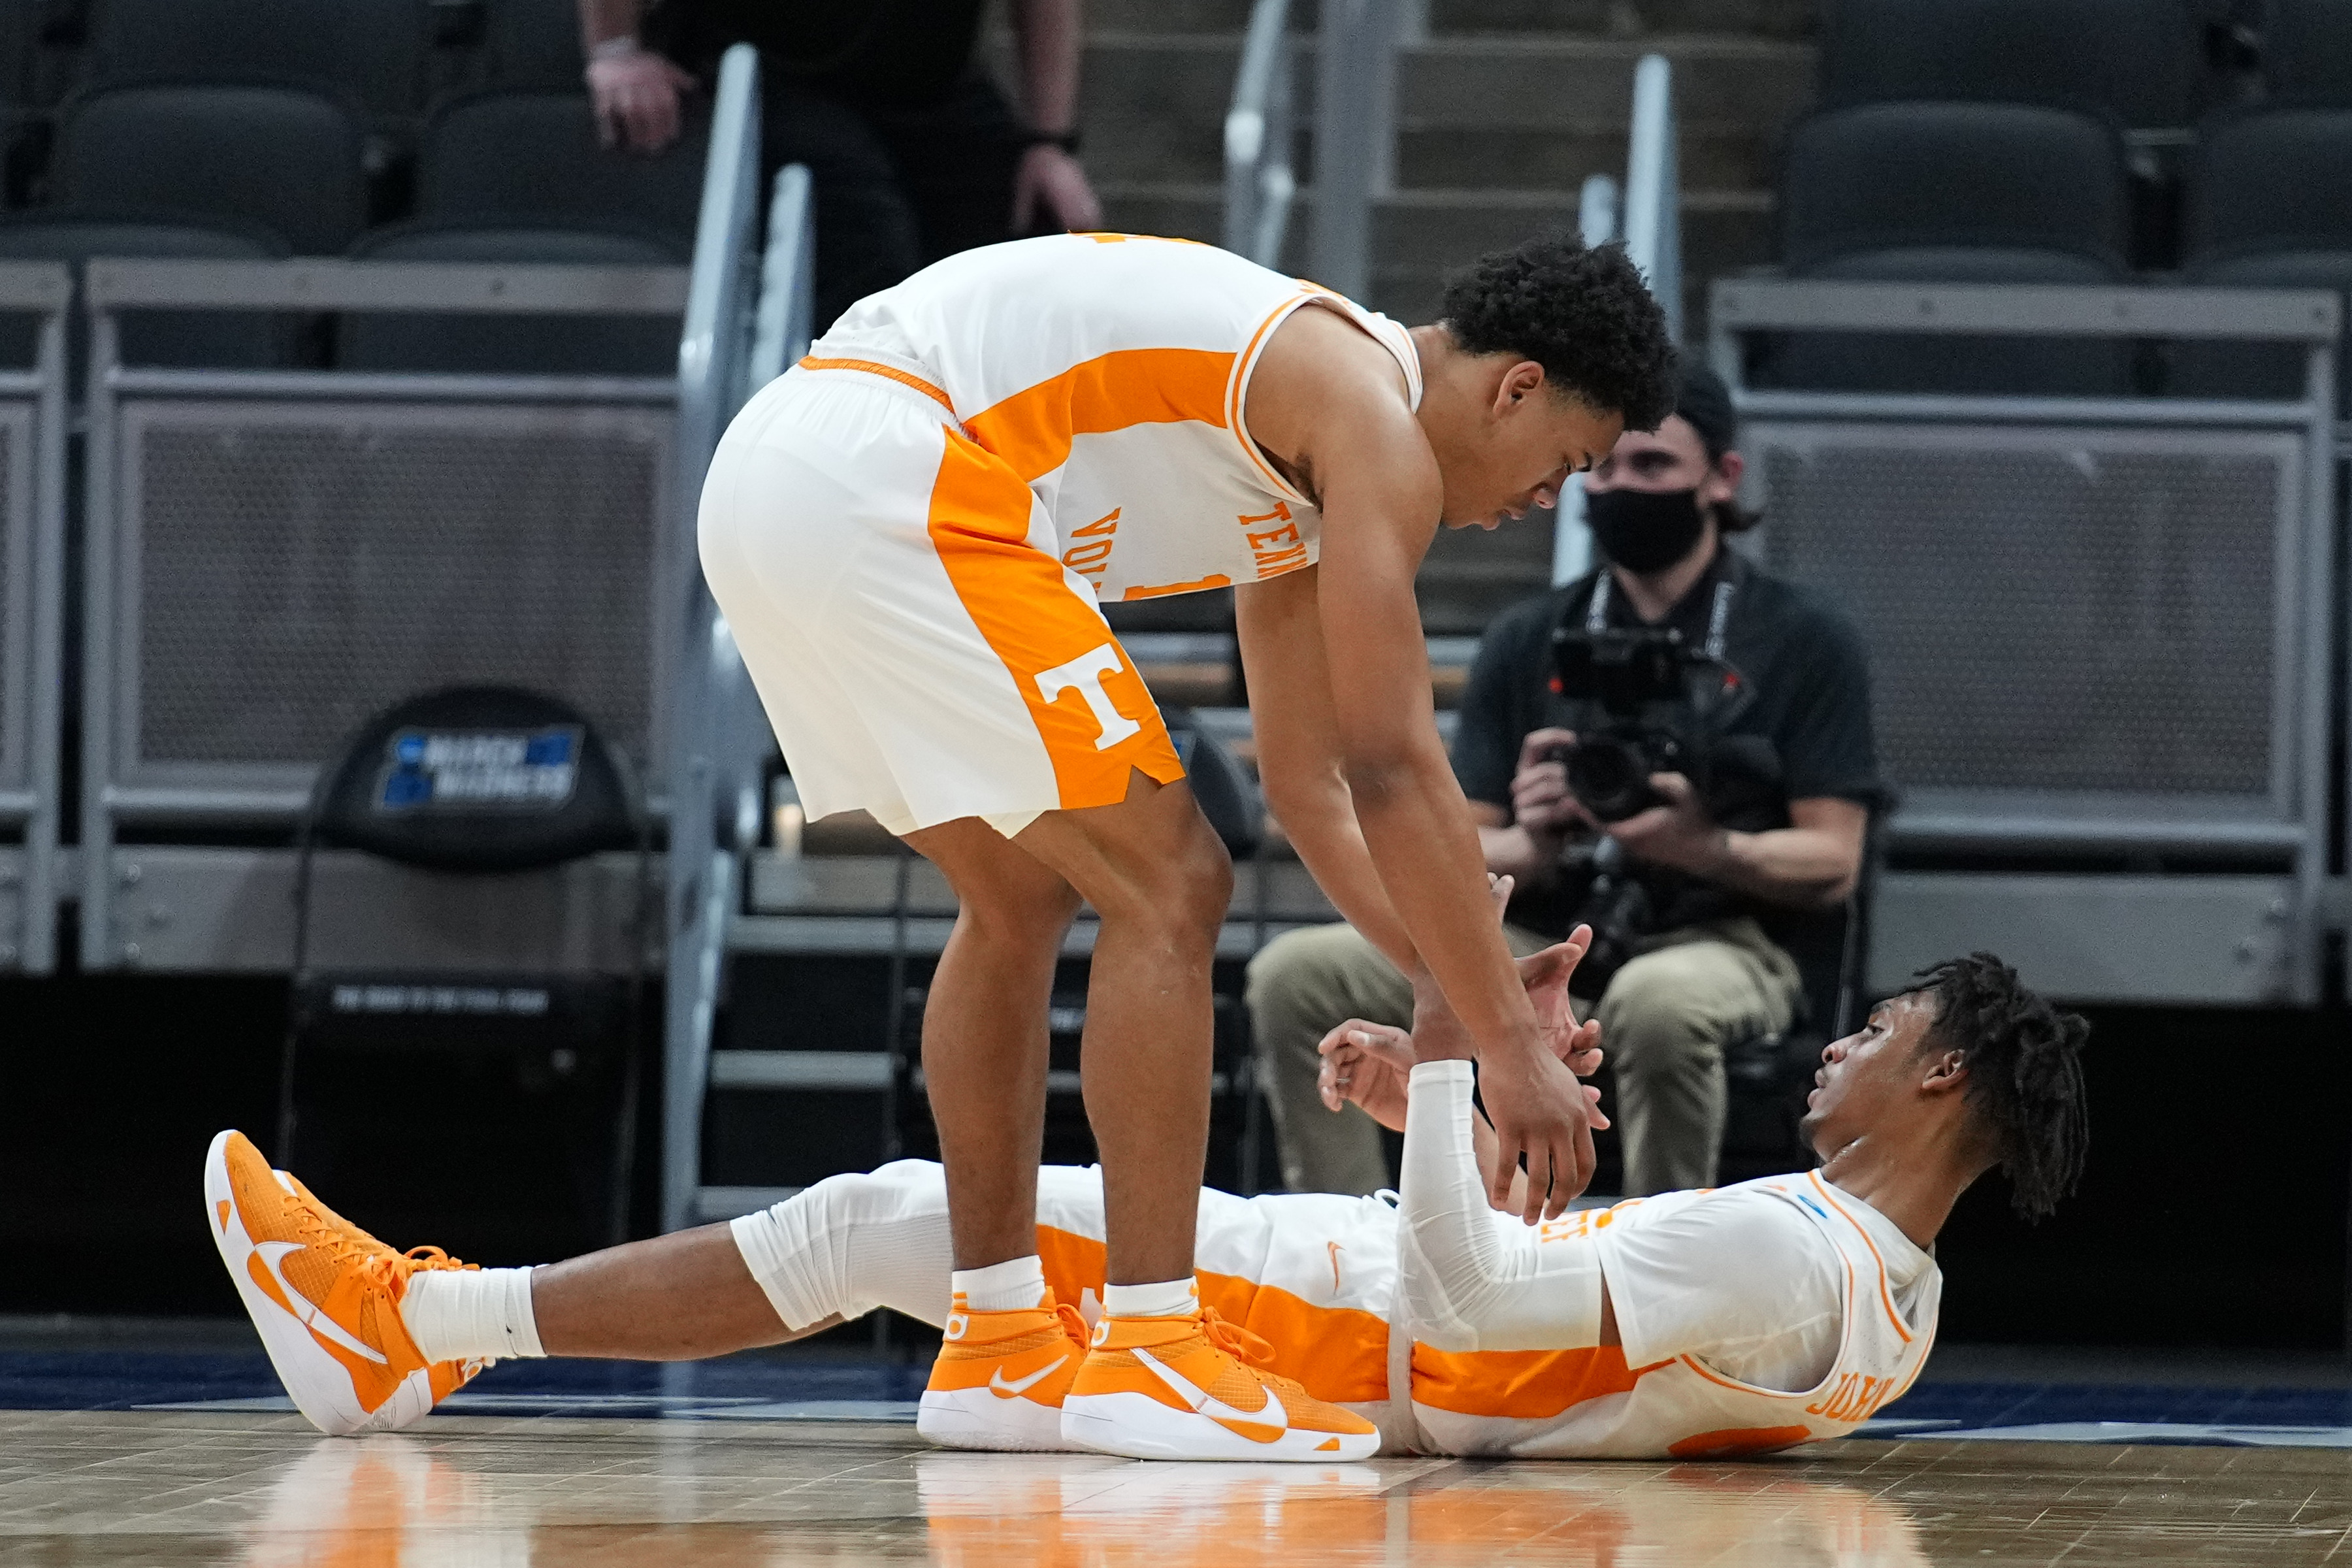 PHOTO GALLERY: Tennessee vs. Oregon St in NCAA Tournament